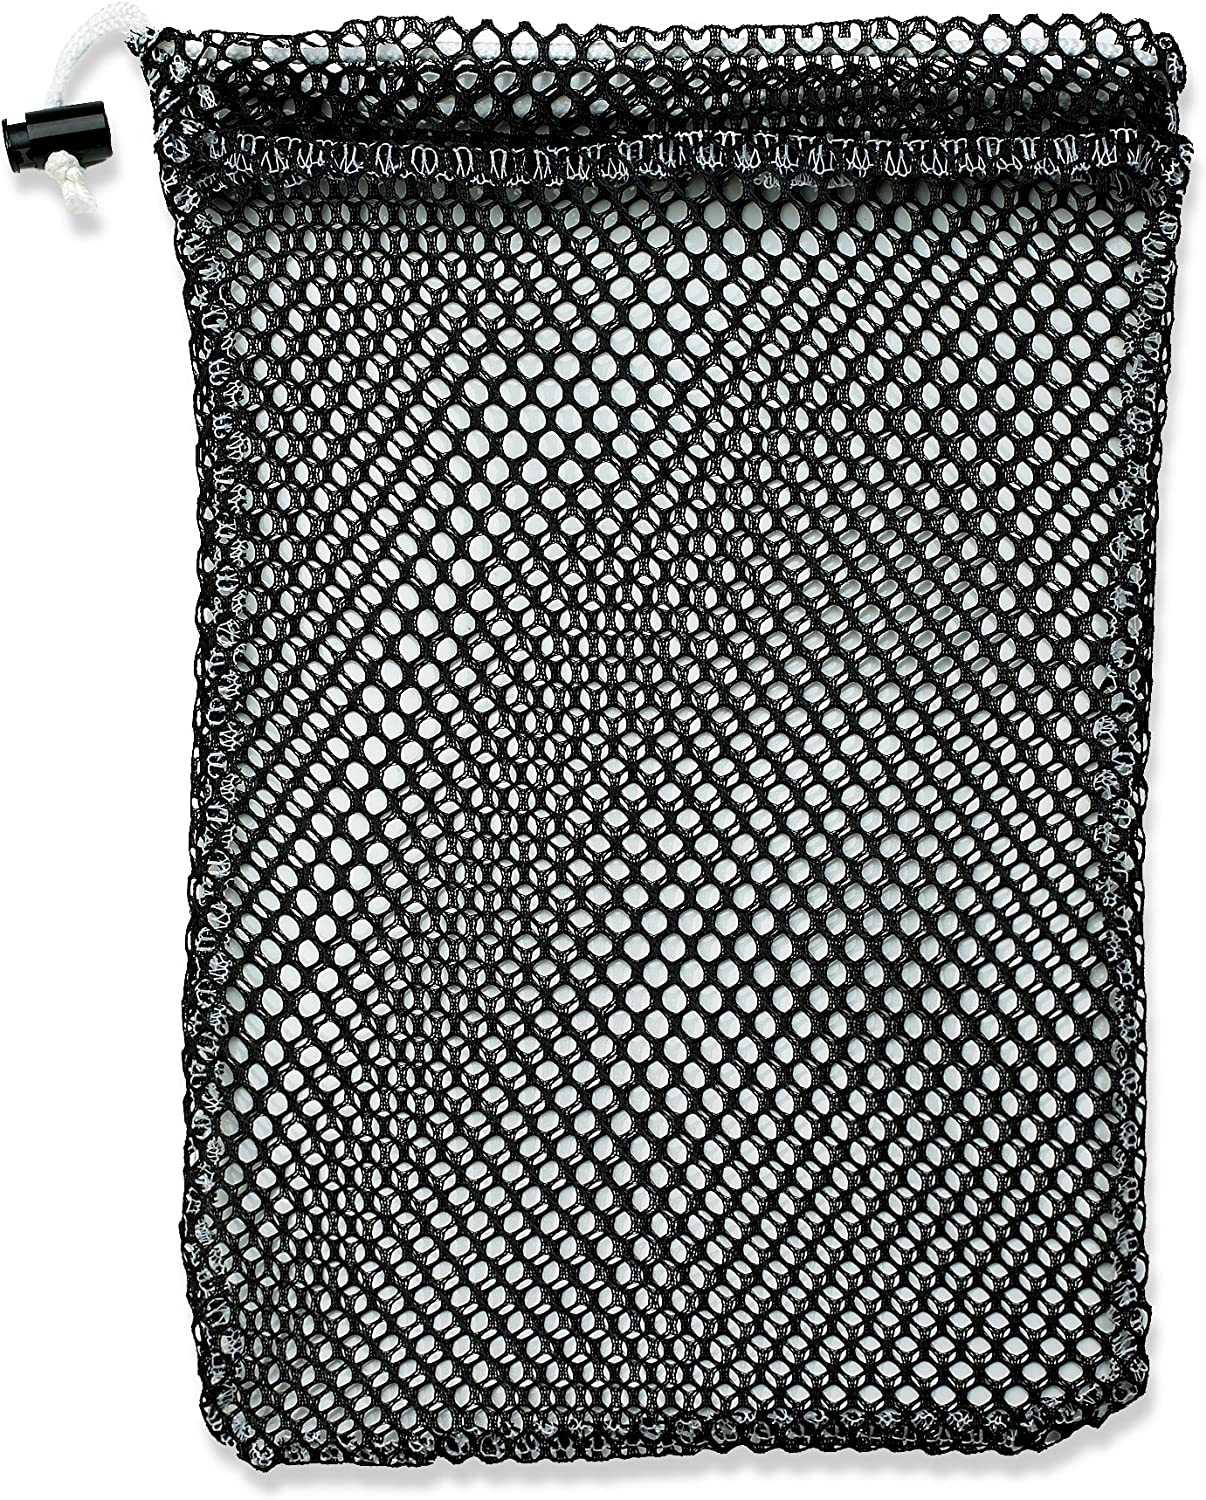 Mesh Stuff Bag - Durable Mesh Bag with Sliding Drawstring Cord Lock Closure.